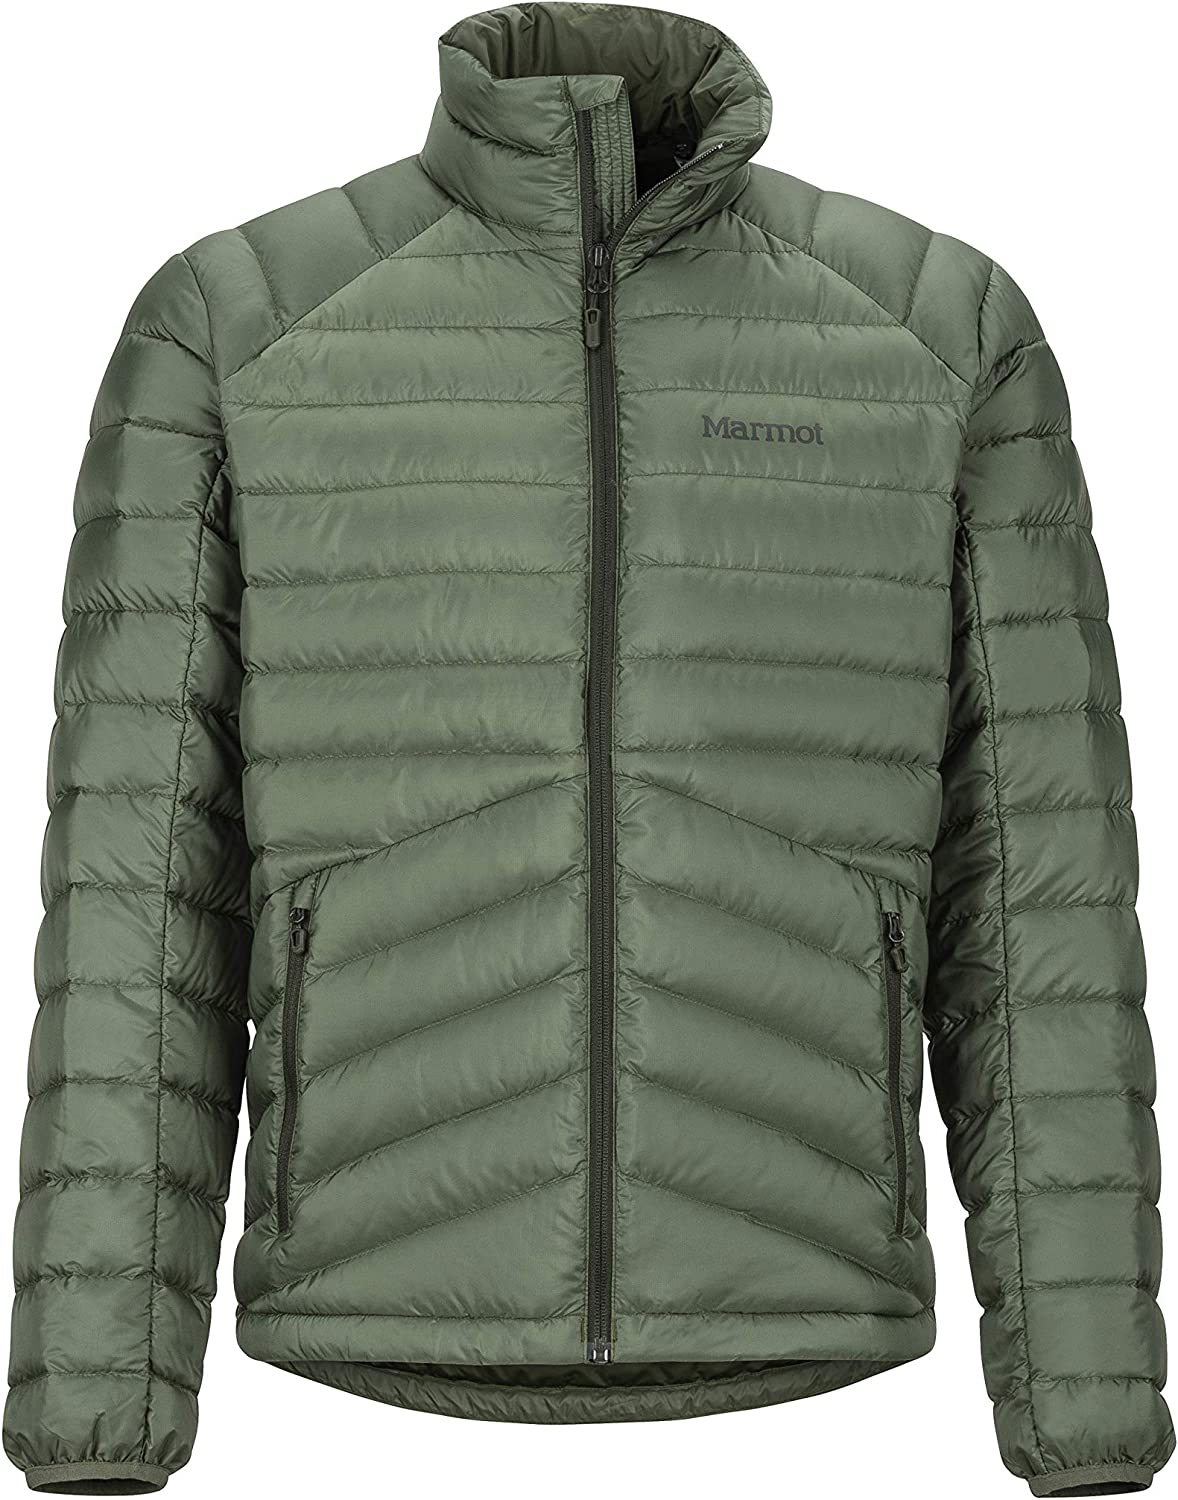 MARMOT Highlander Limited time trial price Jacket At the price of surprise Down